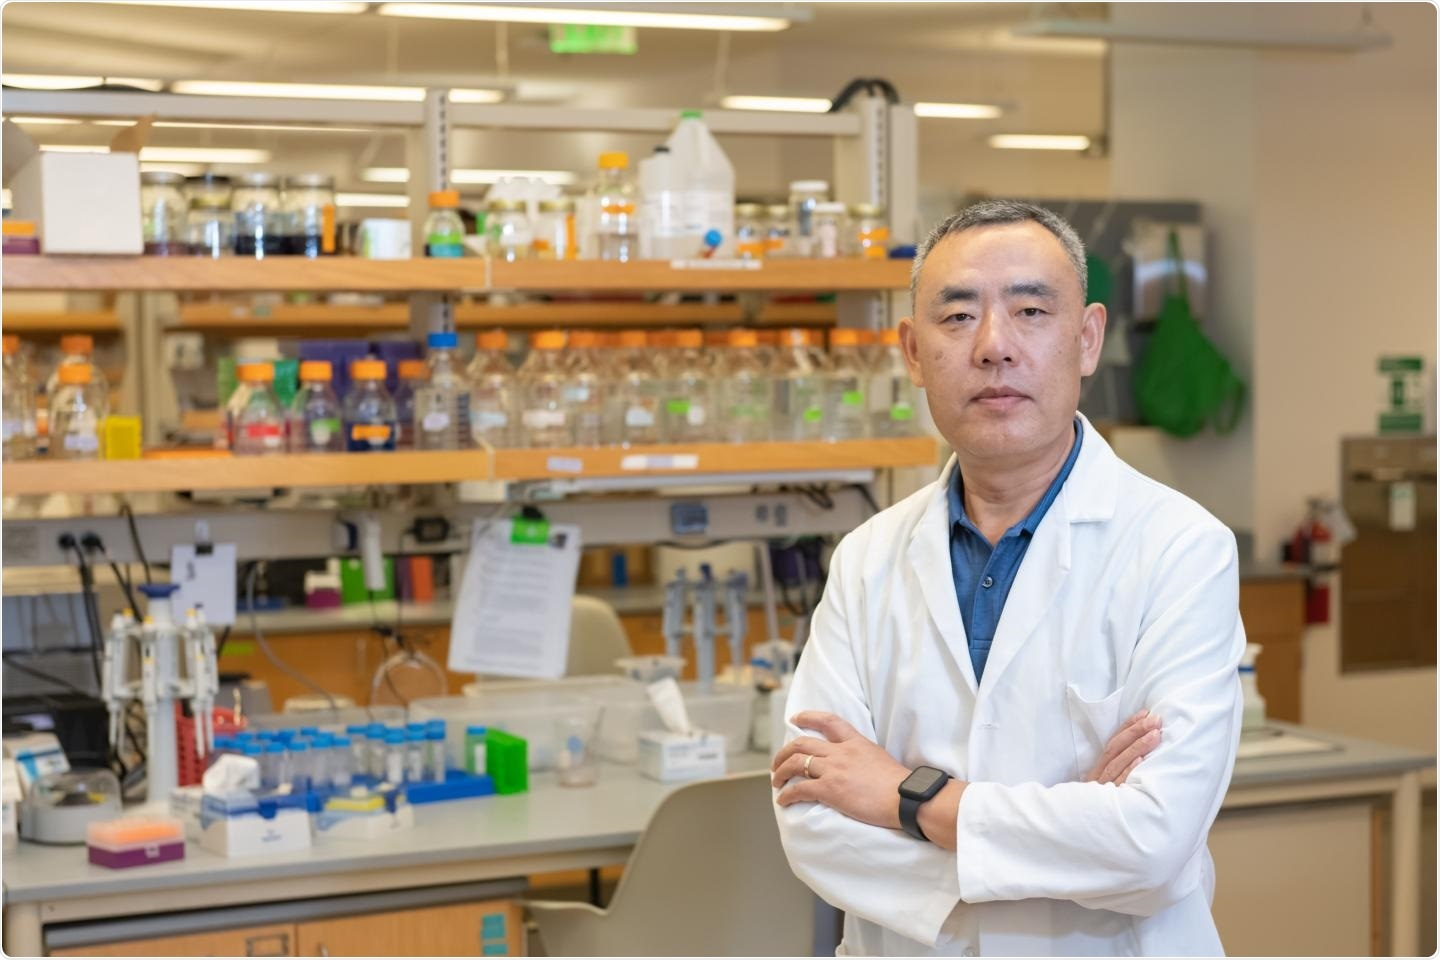 Natural killer cells target breast cancer using the body's immune system